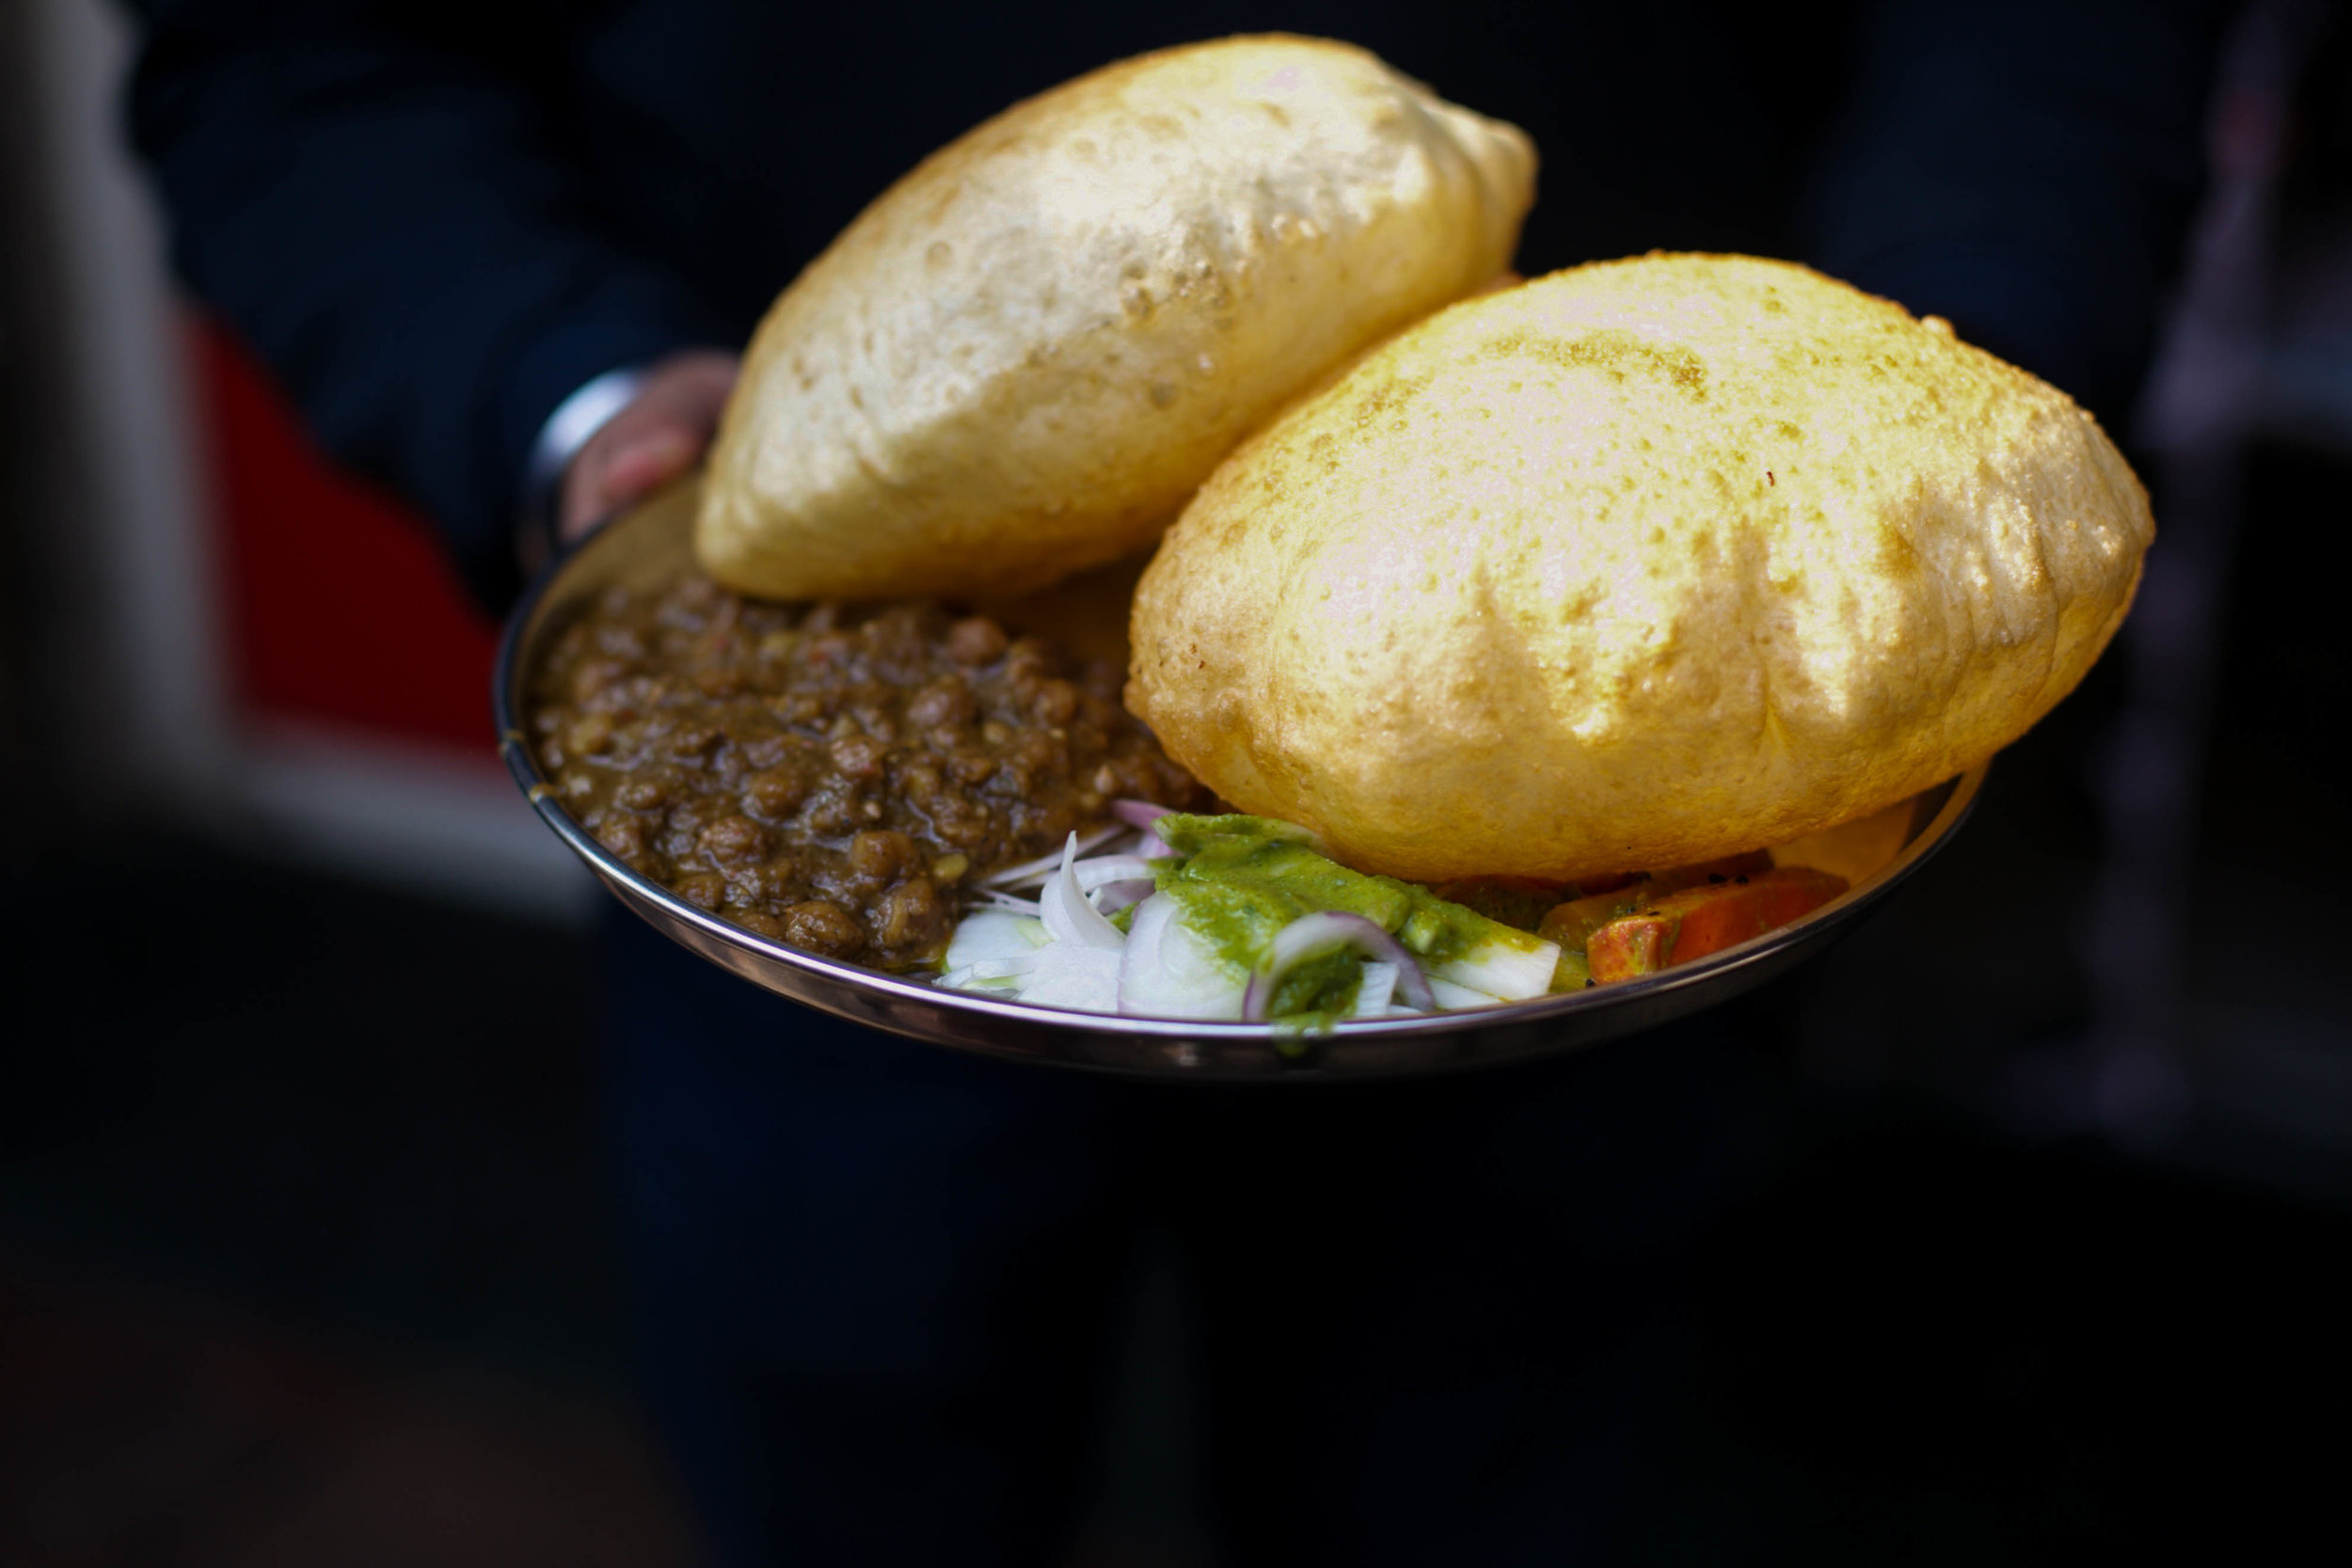 By the end of the walk we have eaten at 12 places, loosened our belts considerably, and are opting to walk instead of hopping into a rickshaw so we can make a bit more room. This chole bhature was hot, spicy and definitely worth it.